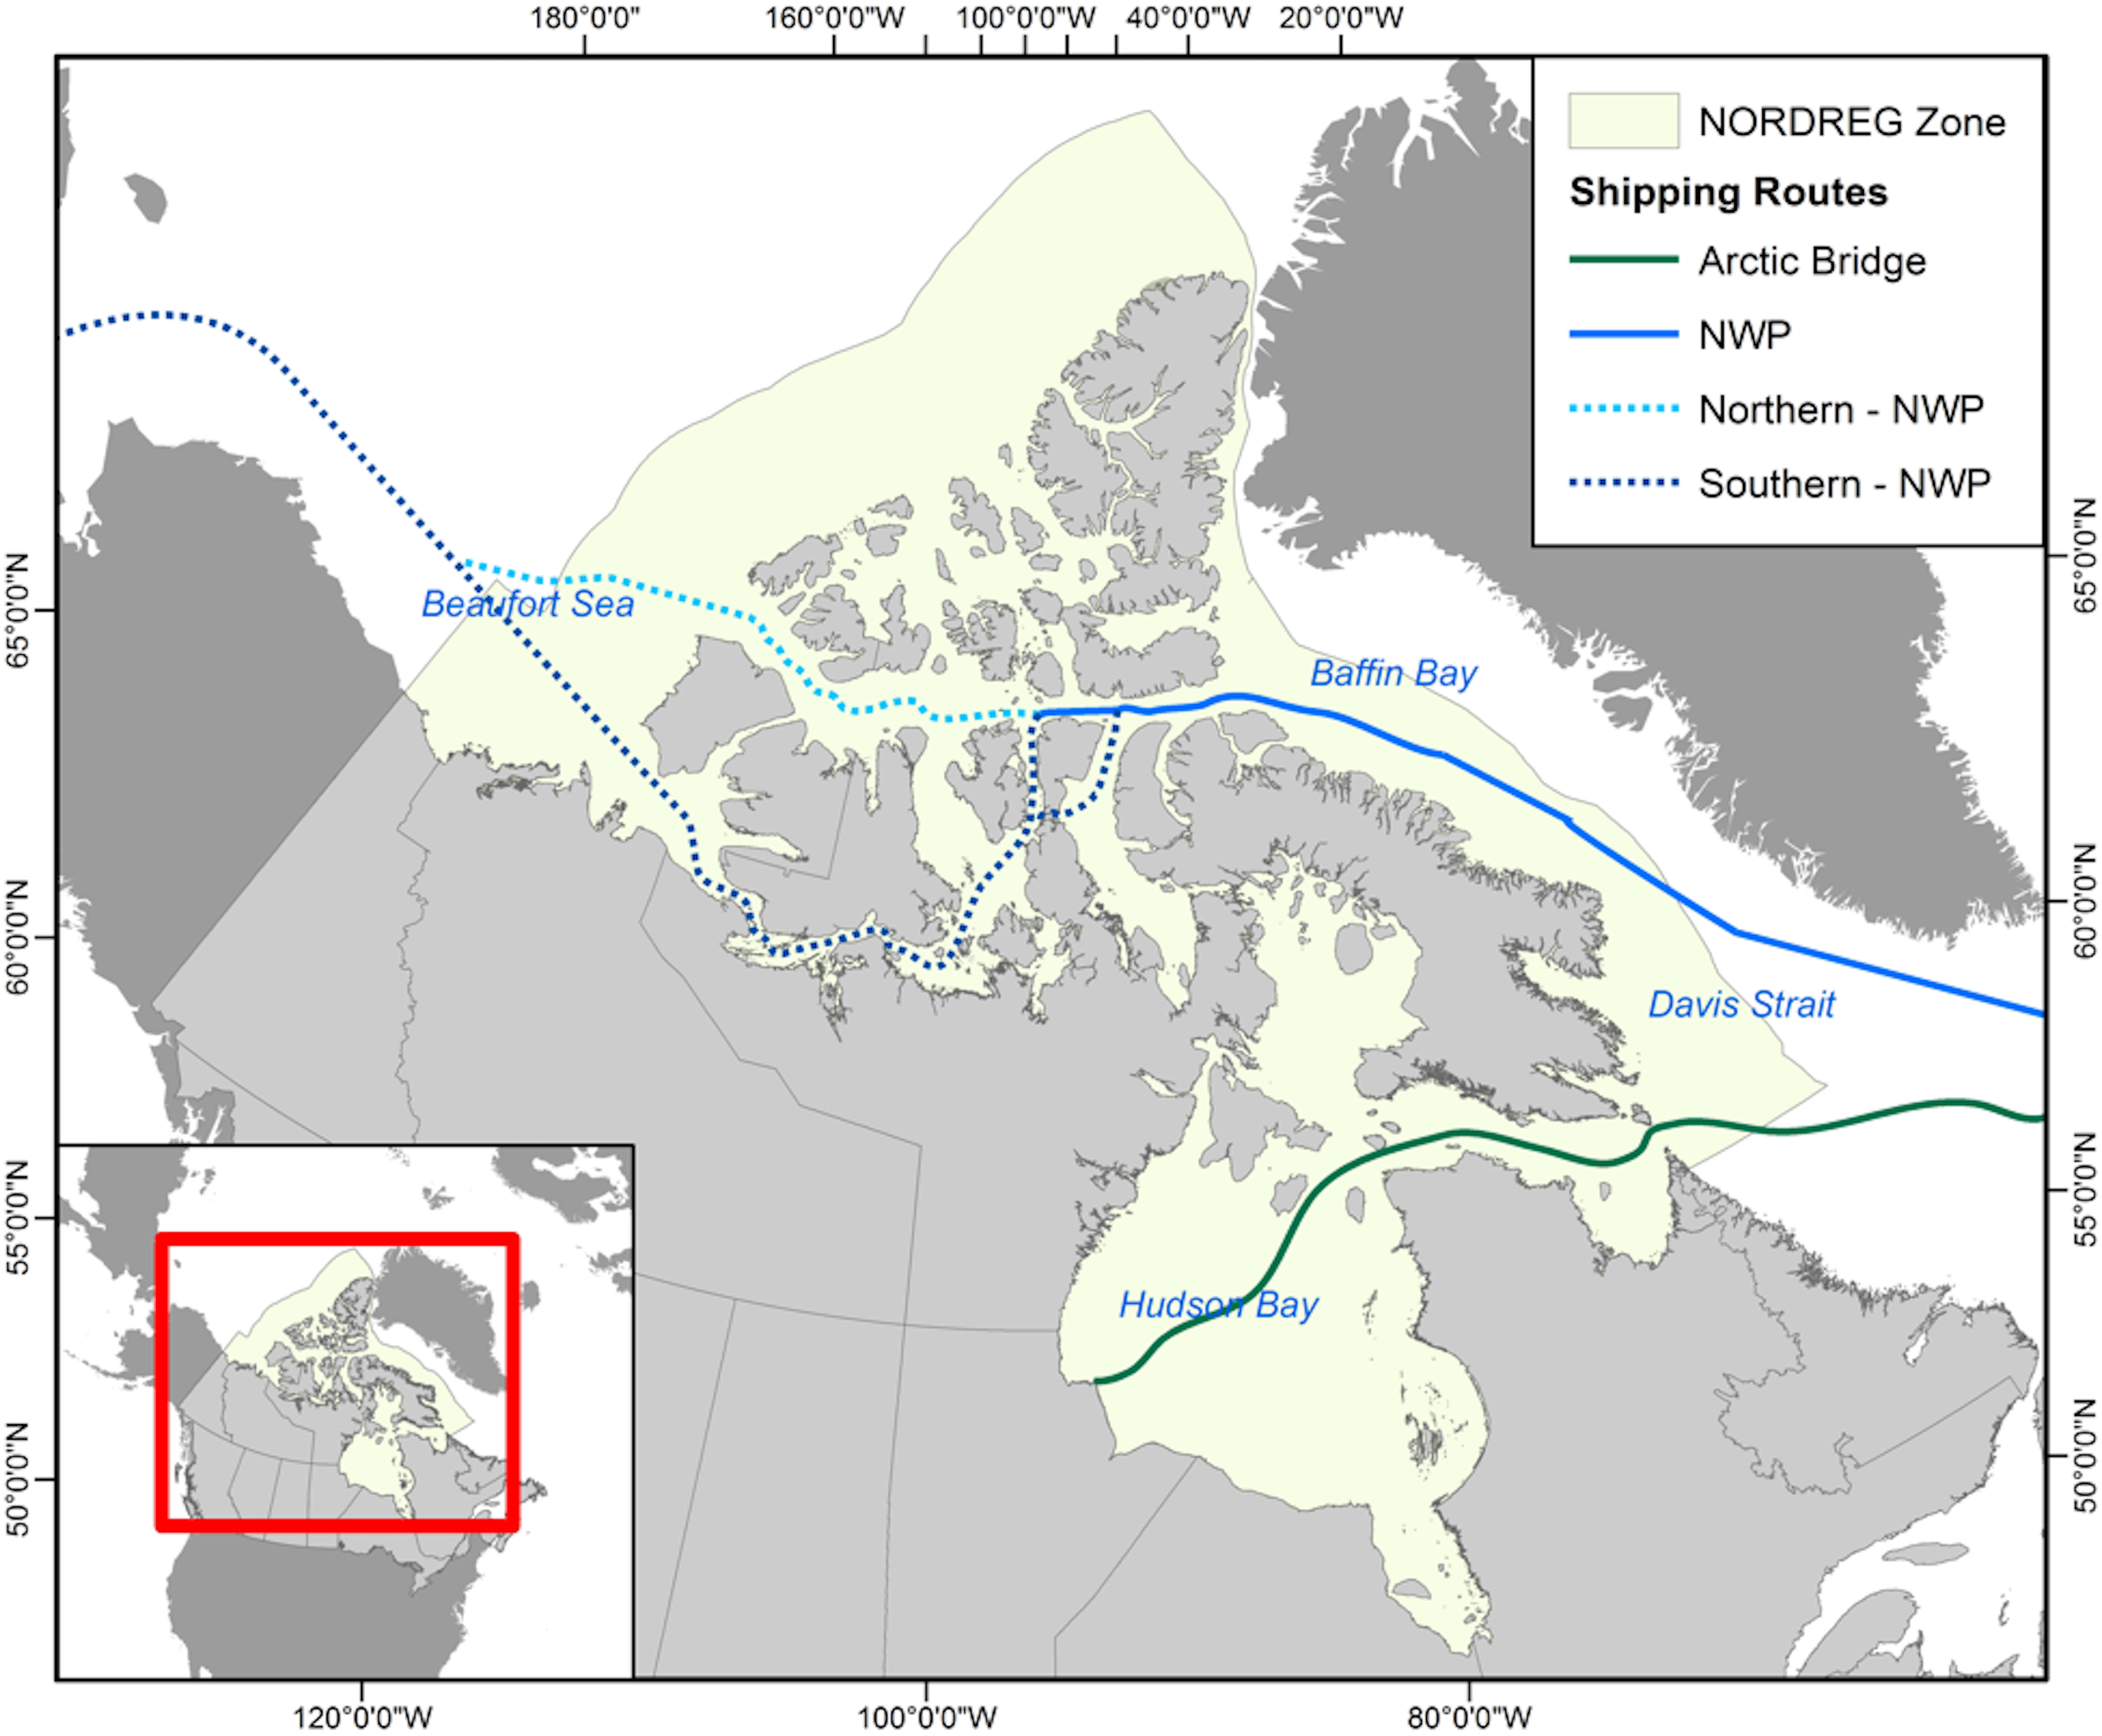 Download Maps & Charts - Arctic Corridors Research Project